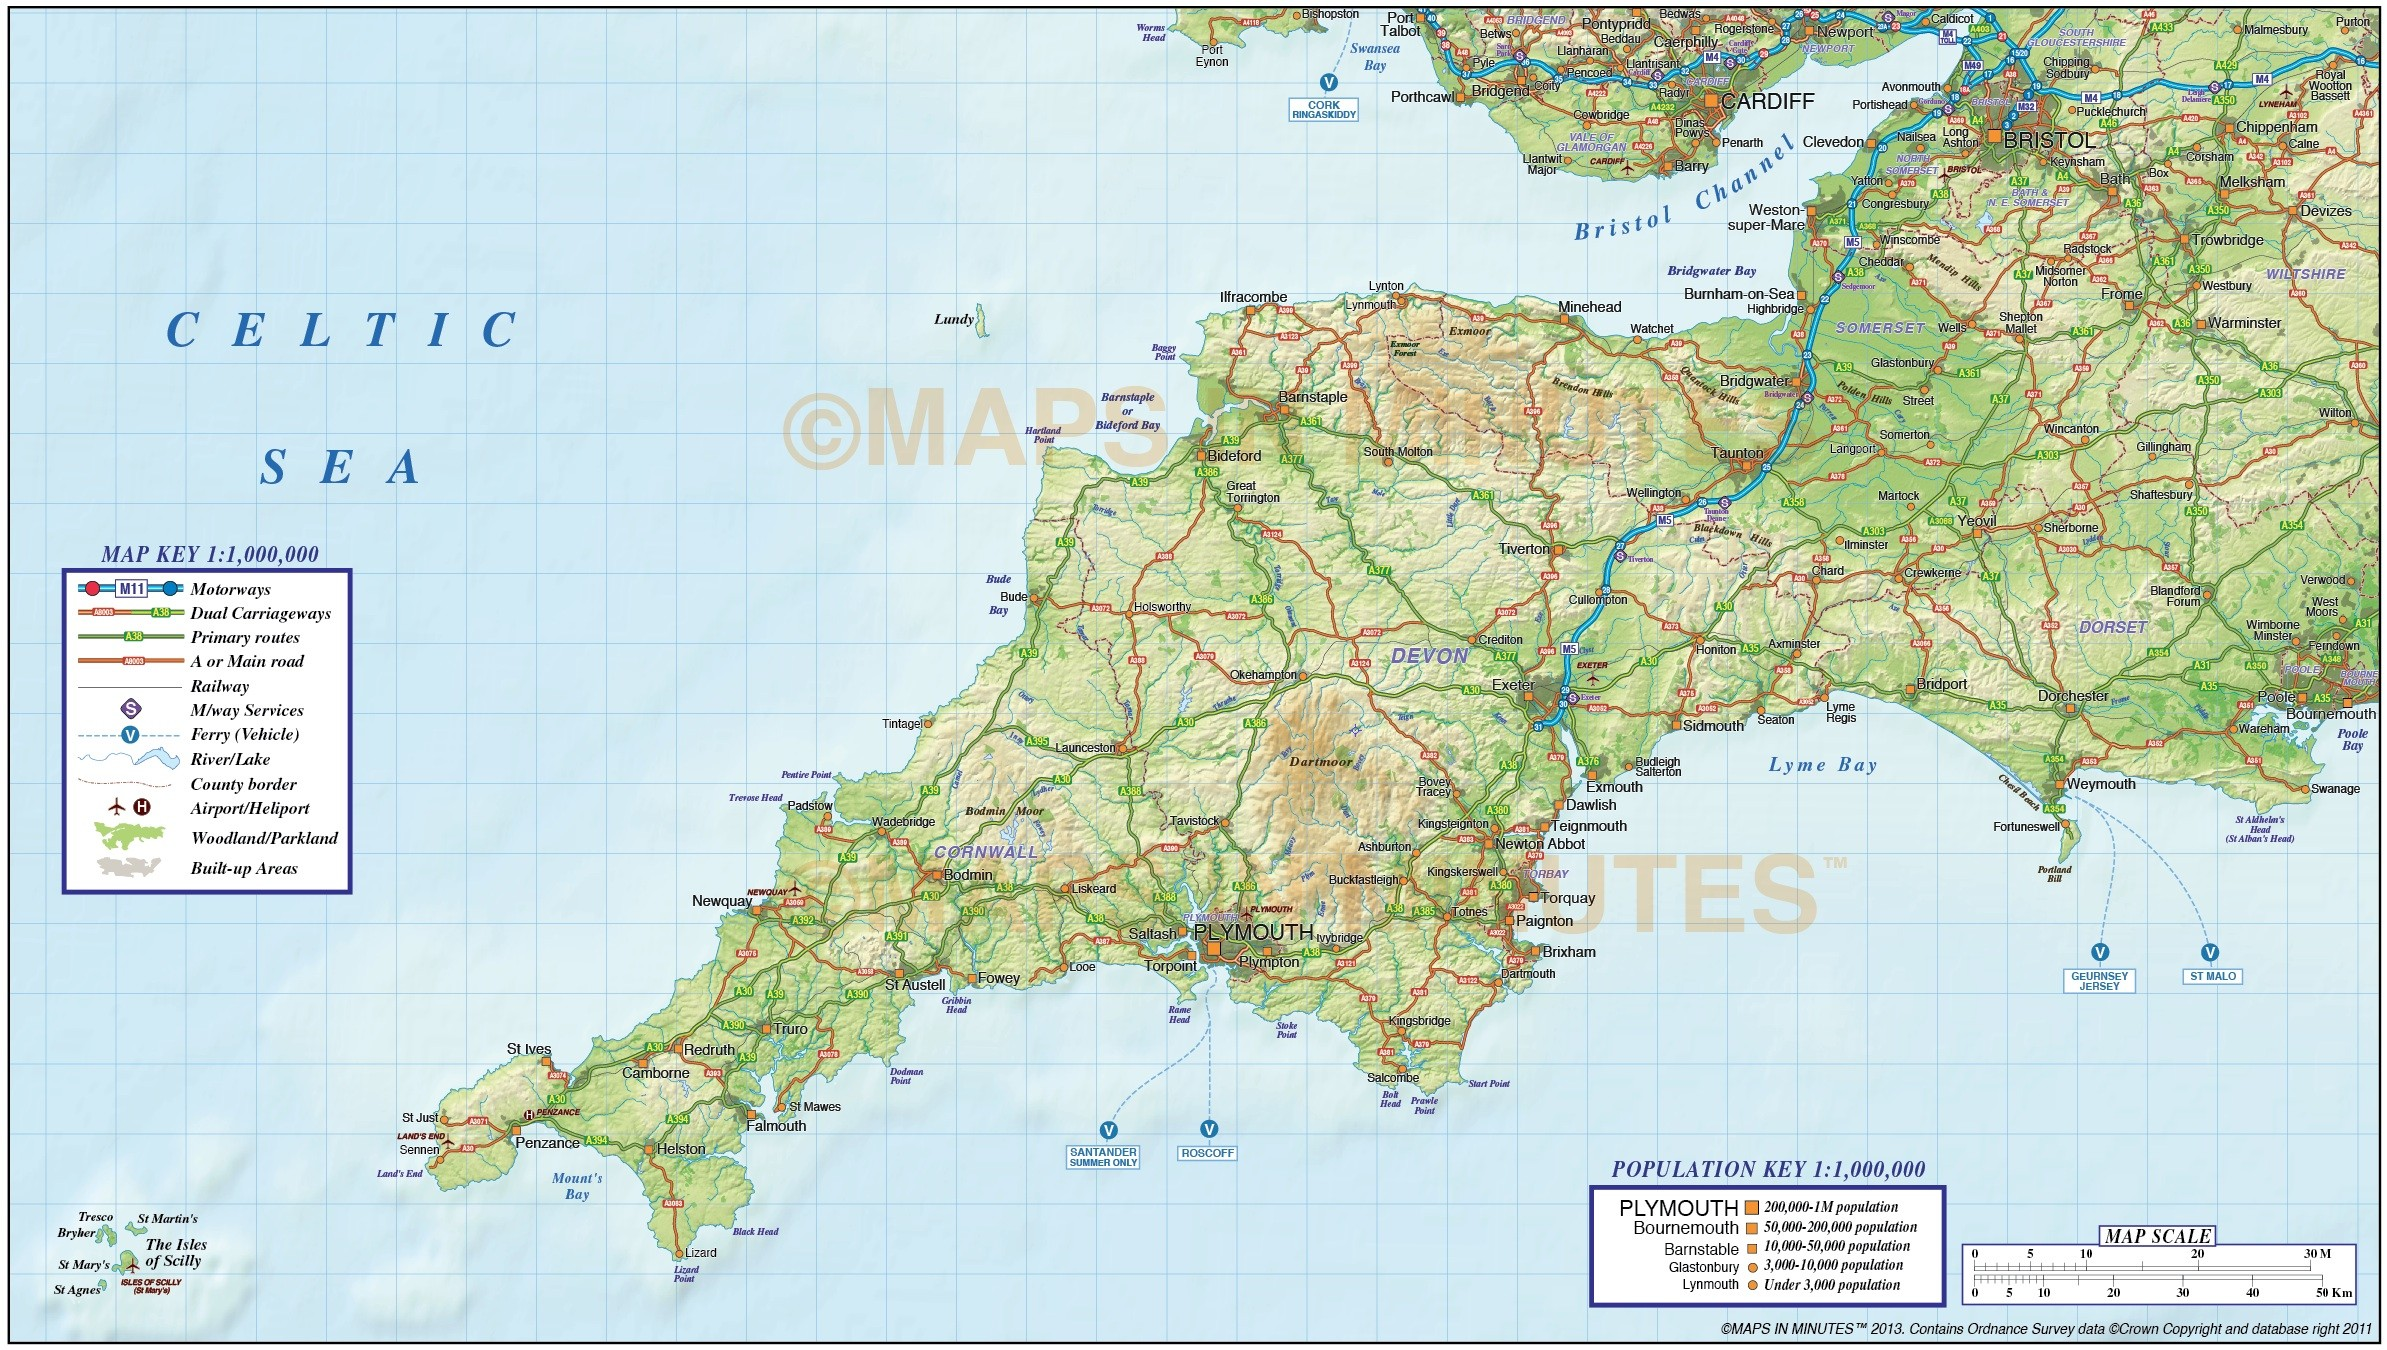 South West England Postcode District Map  D1  – Map Logic as well A Z Laminated Wall Maps  South West England   South Wales likewise 503 Michelin Regional Map Wales Midlands South West England further  also Map of Wales   South west England   Michelin – Maps pany together with Road Map 7   South West England   South Wales furthermore South West U3A Region   Home moreover 01 South West England   Postcode District Map   PDF   Map Stop   Top in addition  as well  in addition Map Wallpaper   Southwest England from Maps On together with  likewise South West England house prices in maps and graphs further South West England map  Illustrator   Mountain High Maps Plus additionally BritRail South West P together with Southwest England   TradeInvest   BritishAmerican Business. on map of south west england